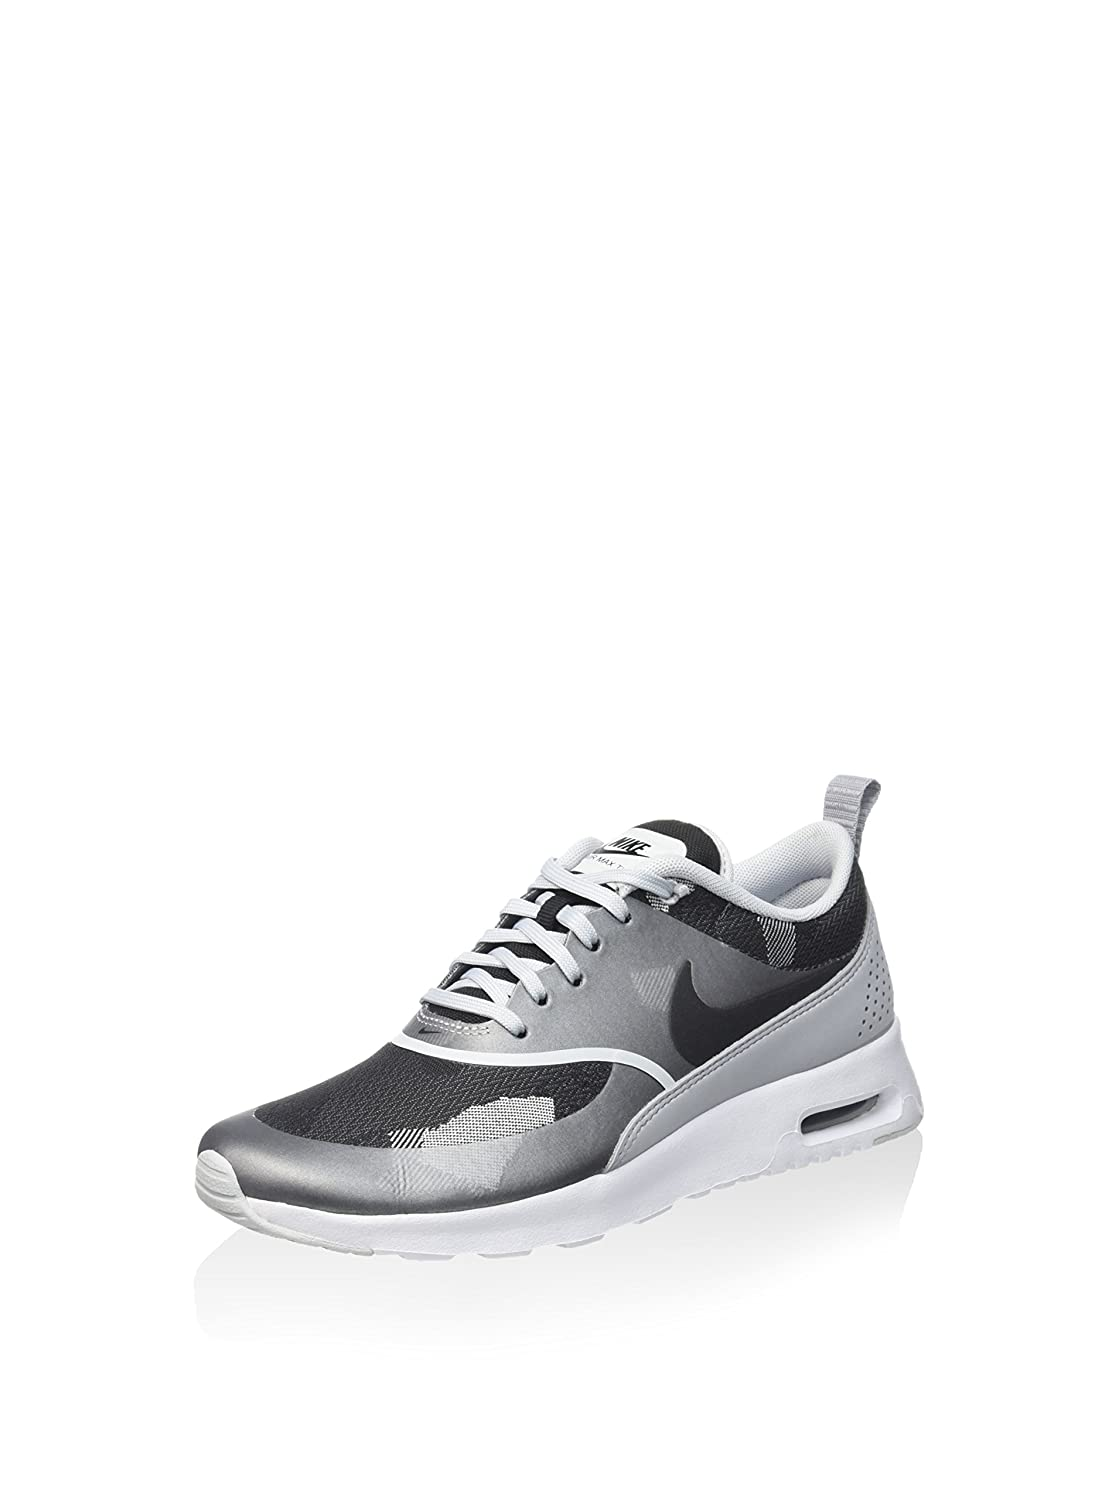 brand new 8729c 01043 Amazon.com  Nike Womens WMNS Air Max Thea JCRD, Pure PlatinumBlack-Wolf  Grey  Road Running